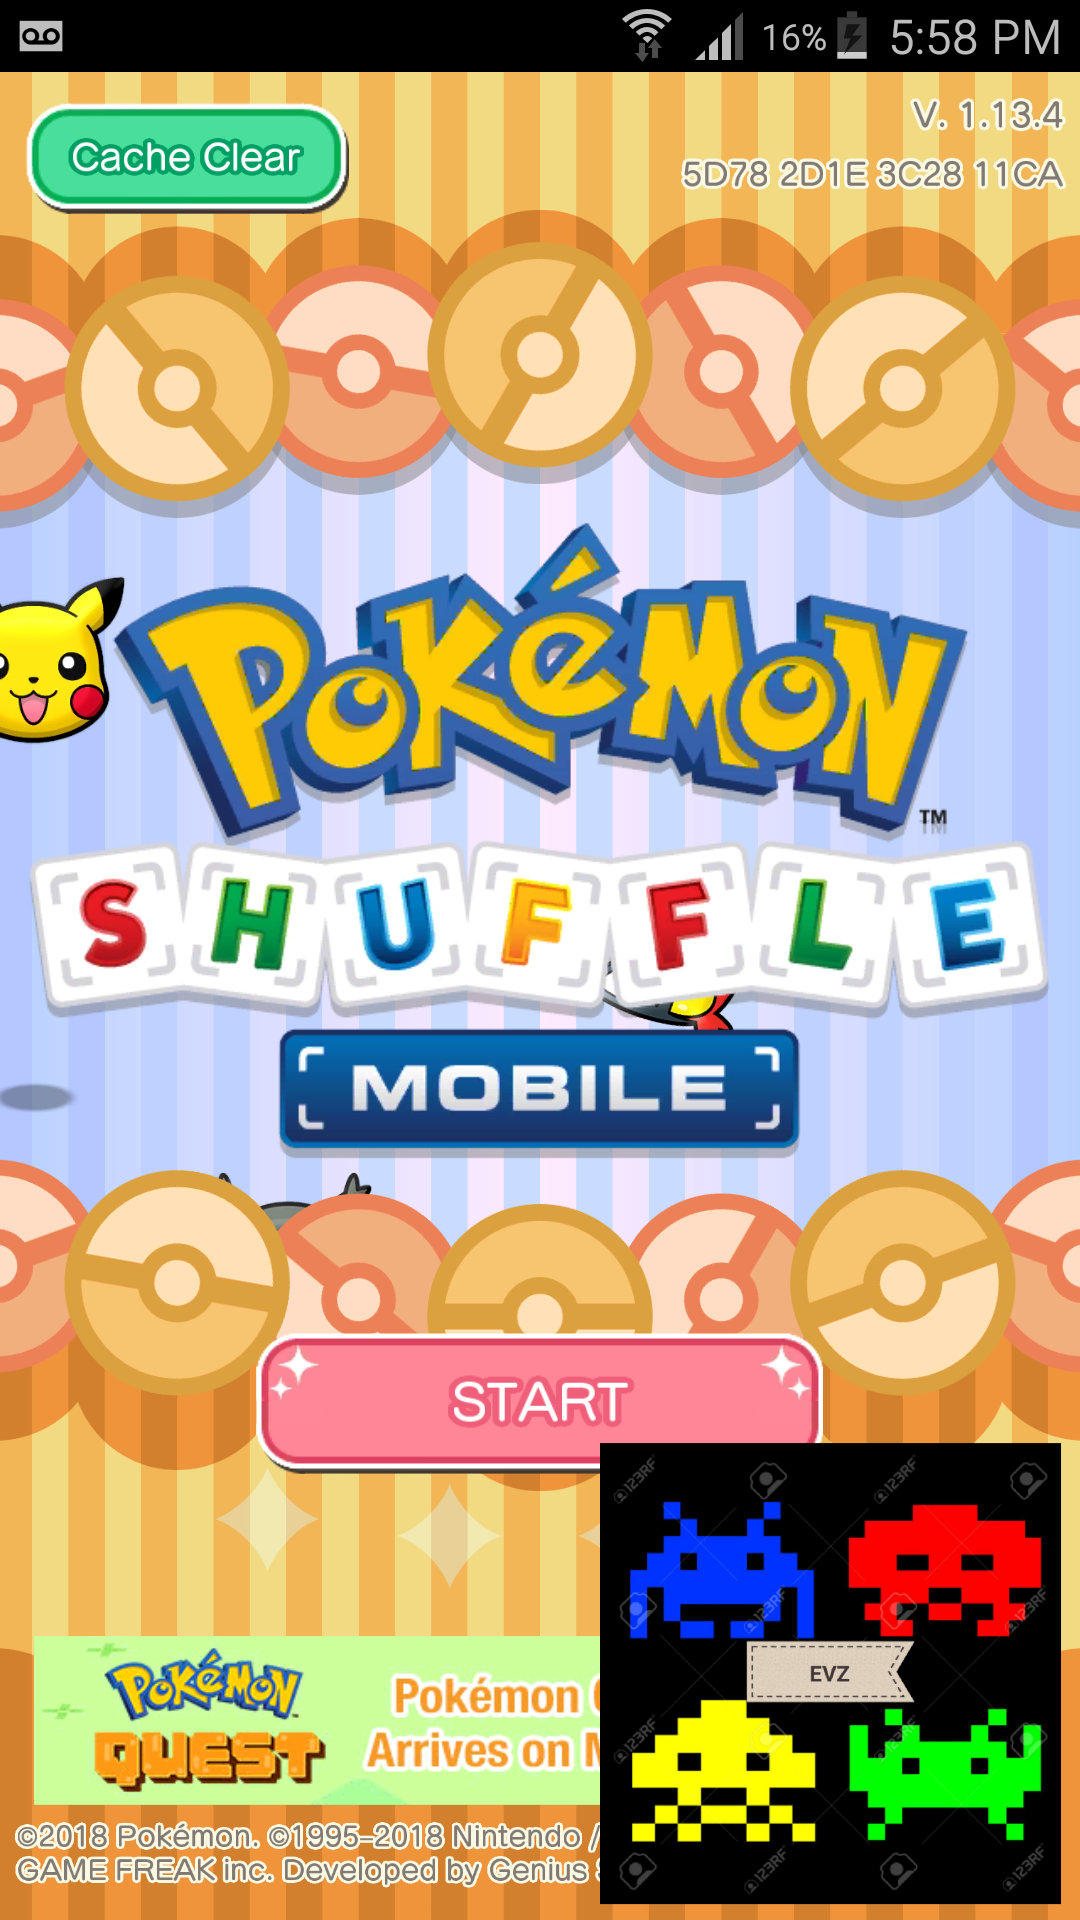 Pokemon Shuffle Mobile: Stage 012 10,058 points